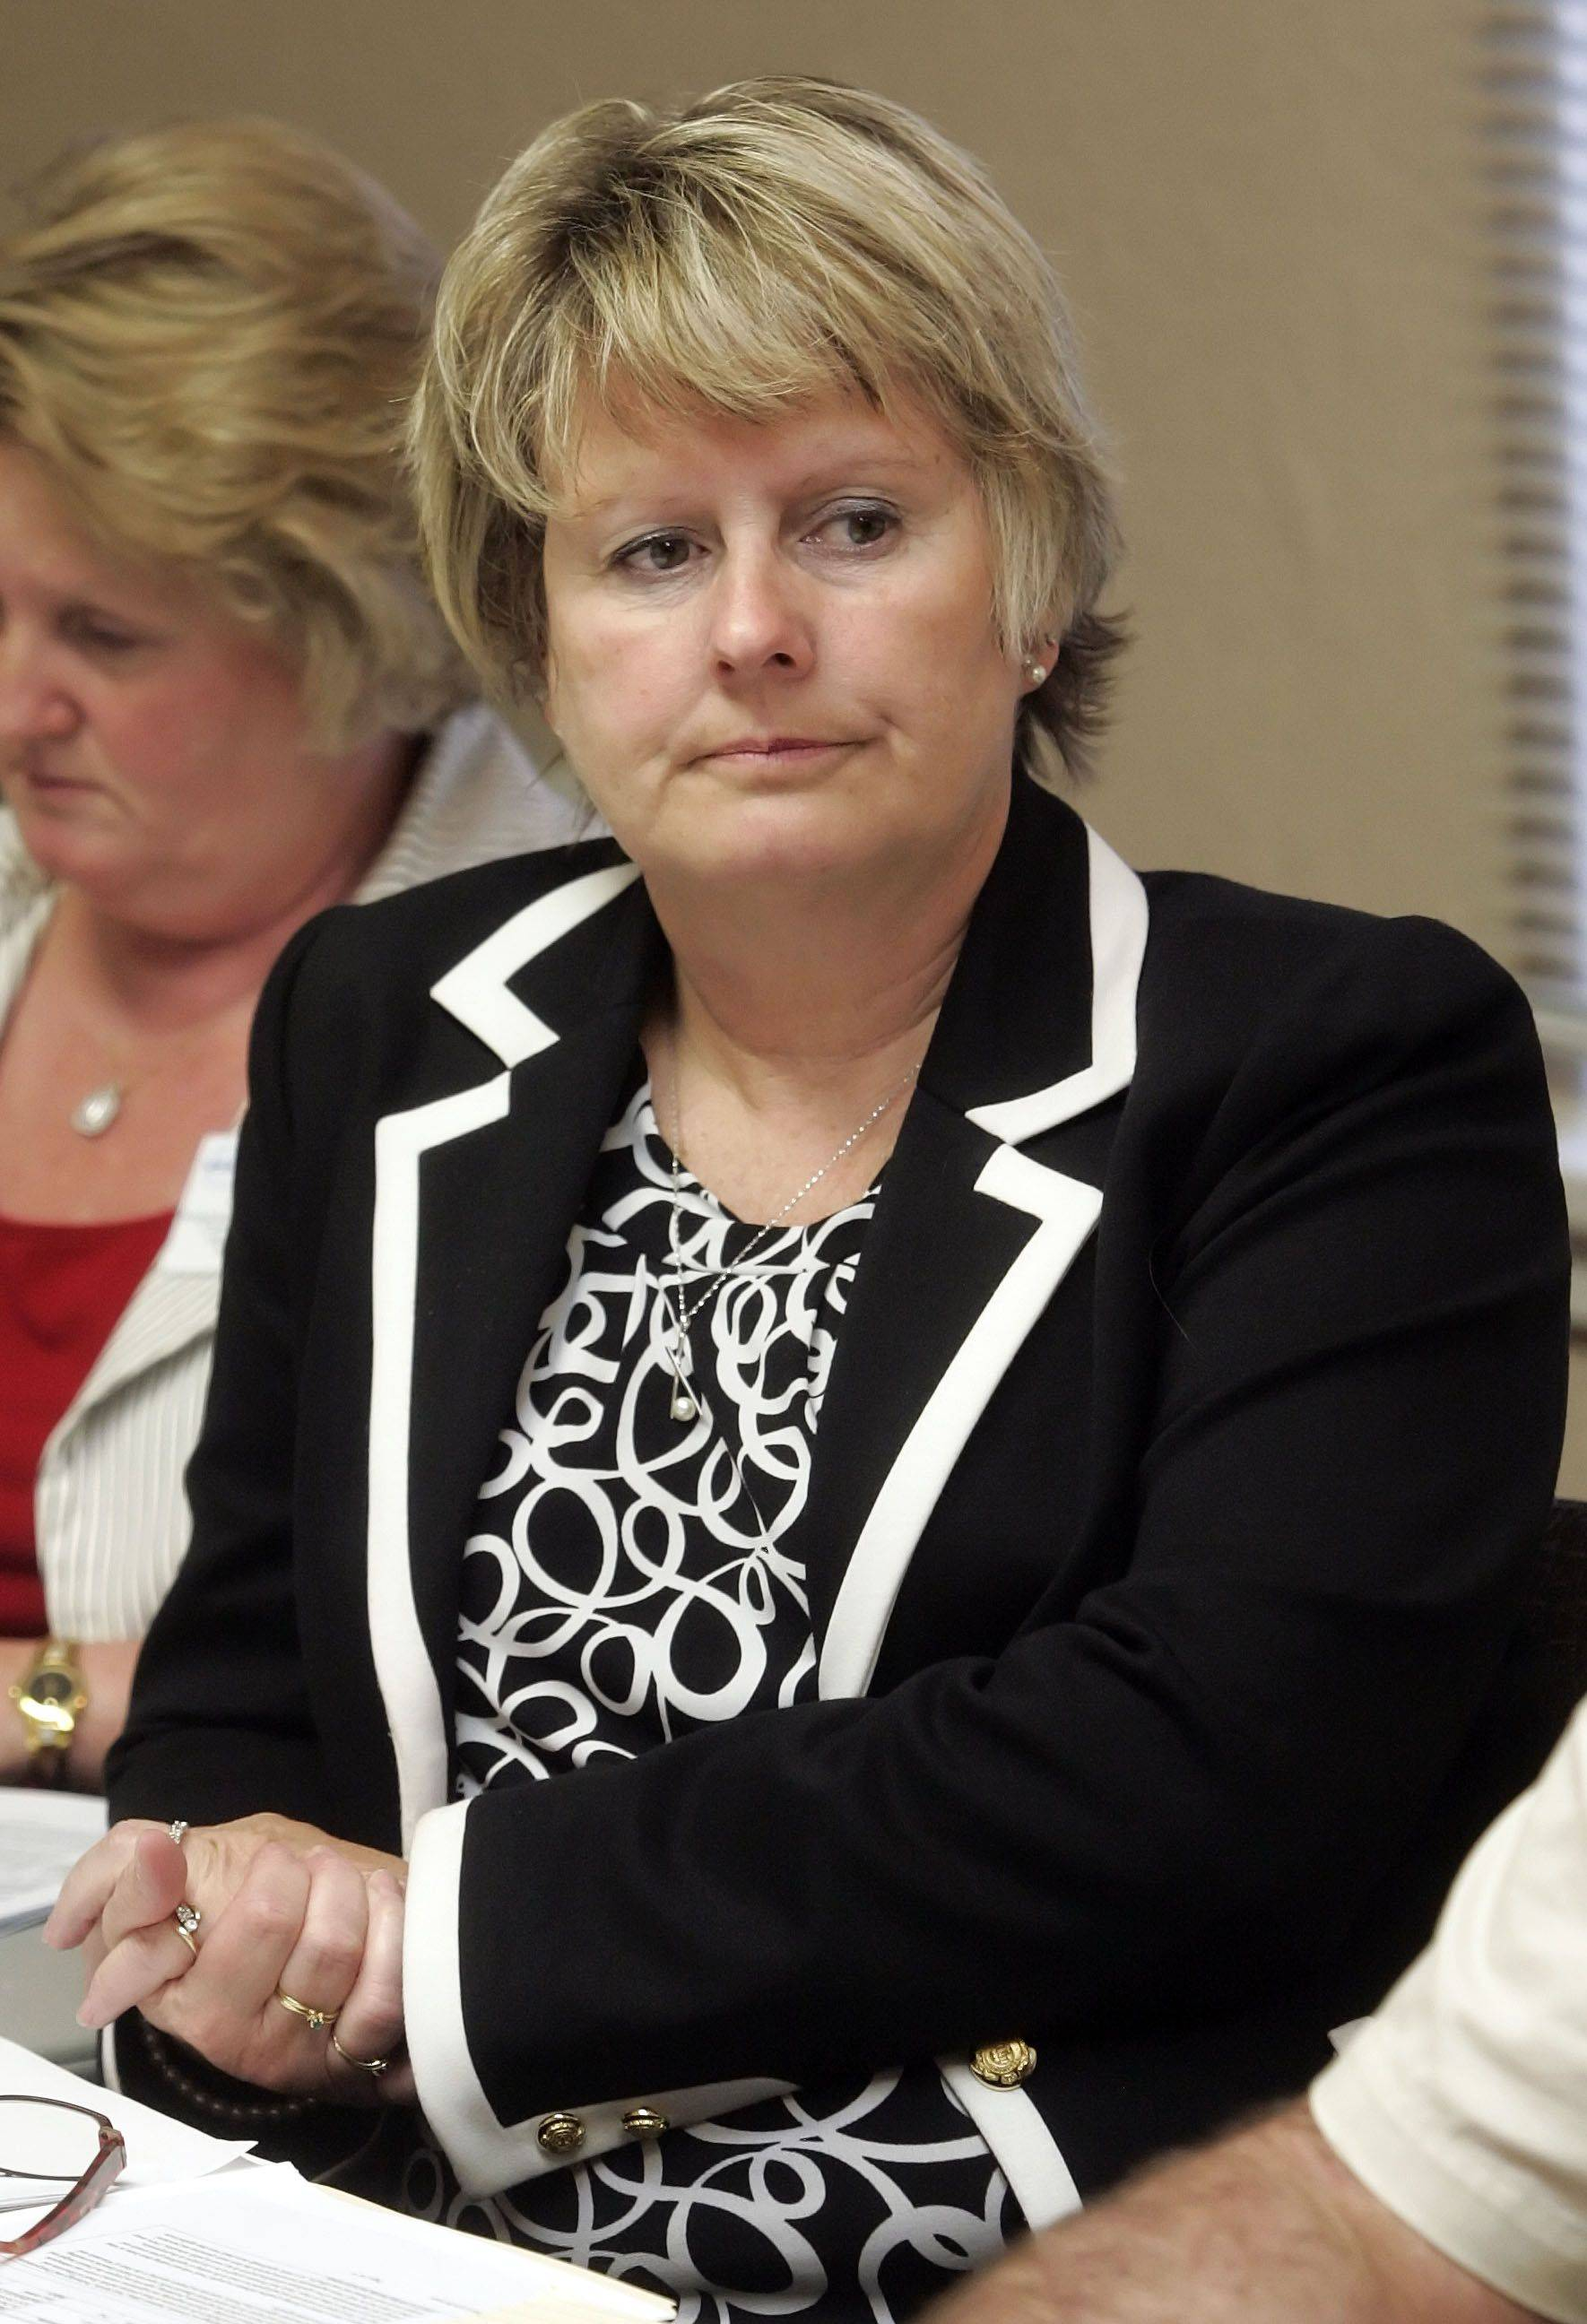 Grayslake D46 boss cleared in email complaint